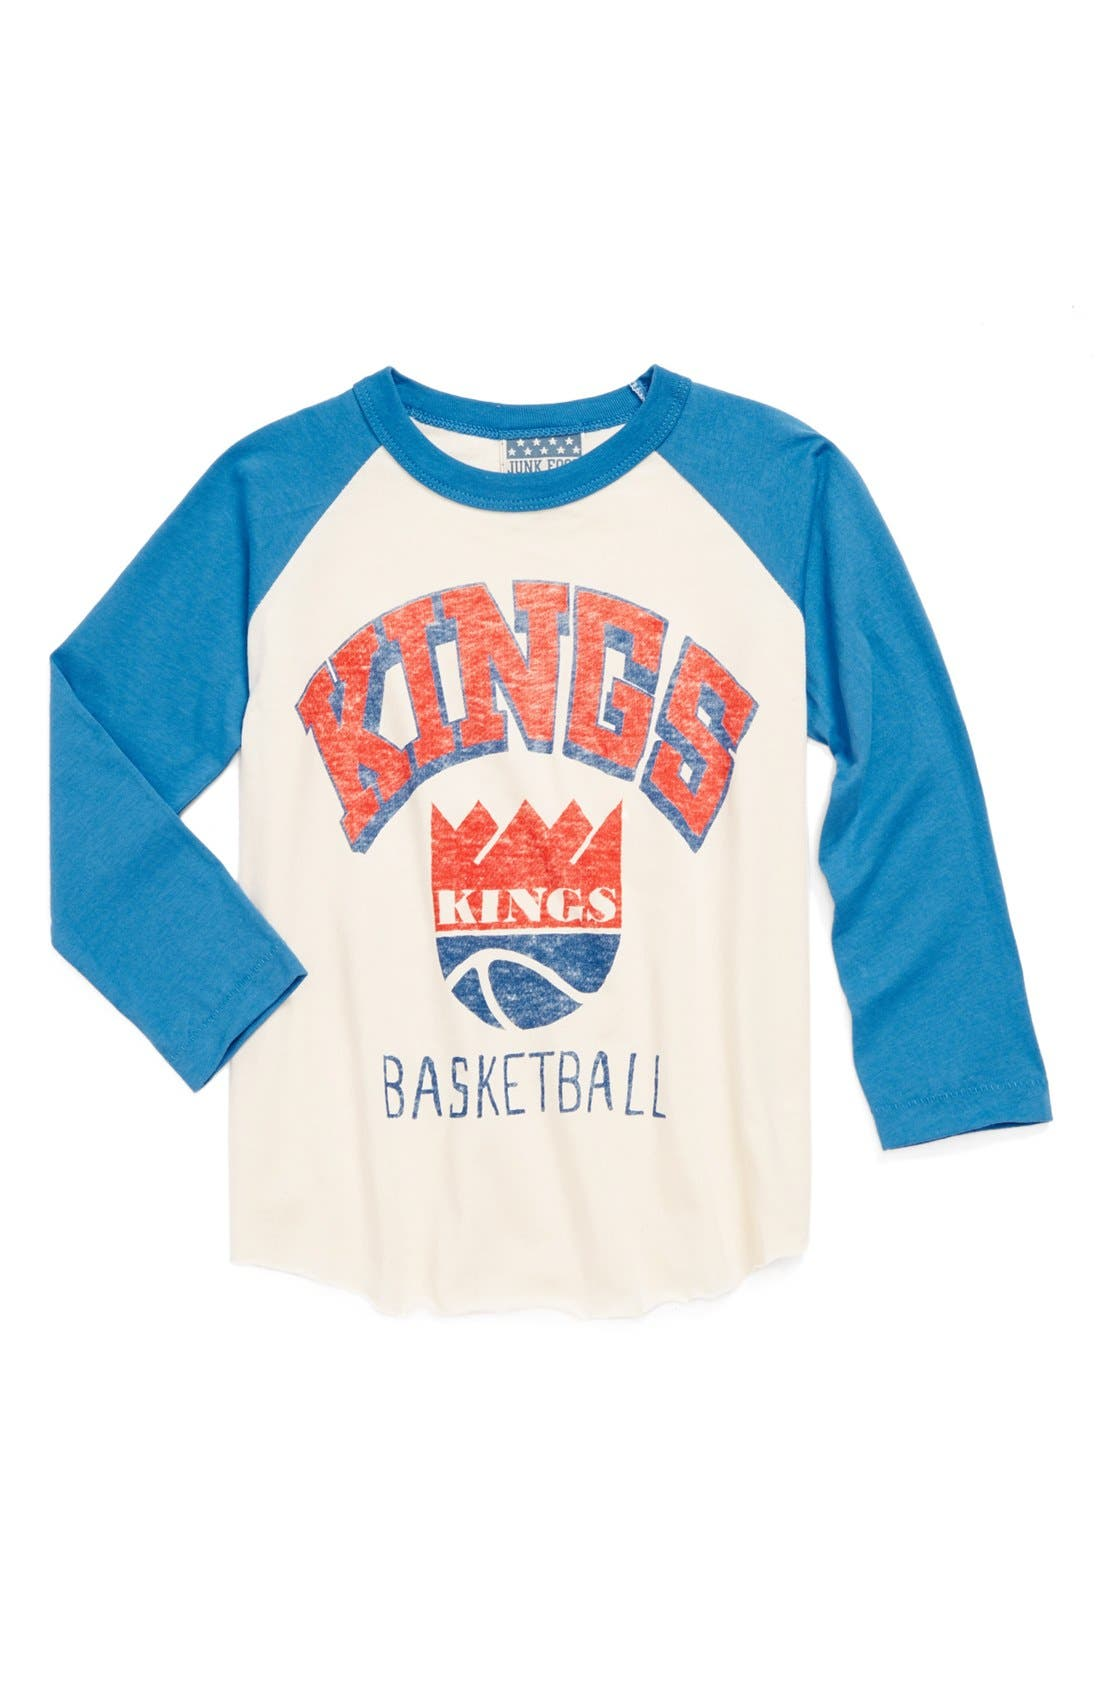 Main Image - Junk Food 'Sacramento Kings' Long Sleeve T-Shirt (Toddler Boys)